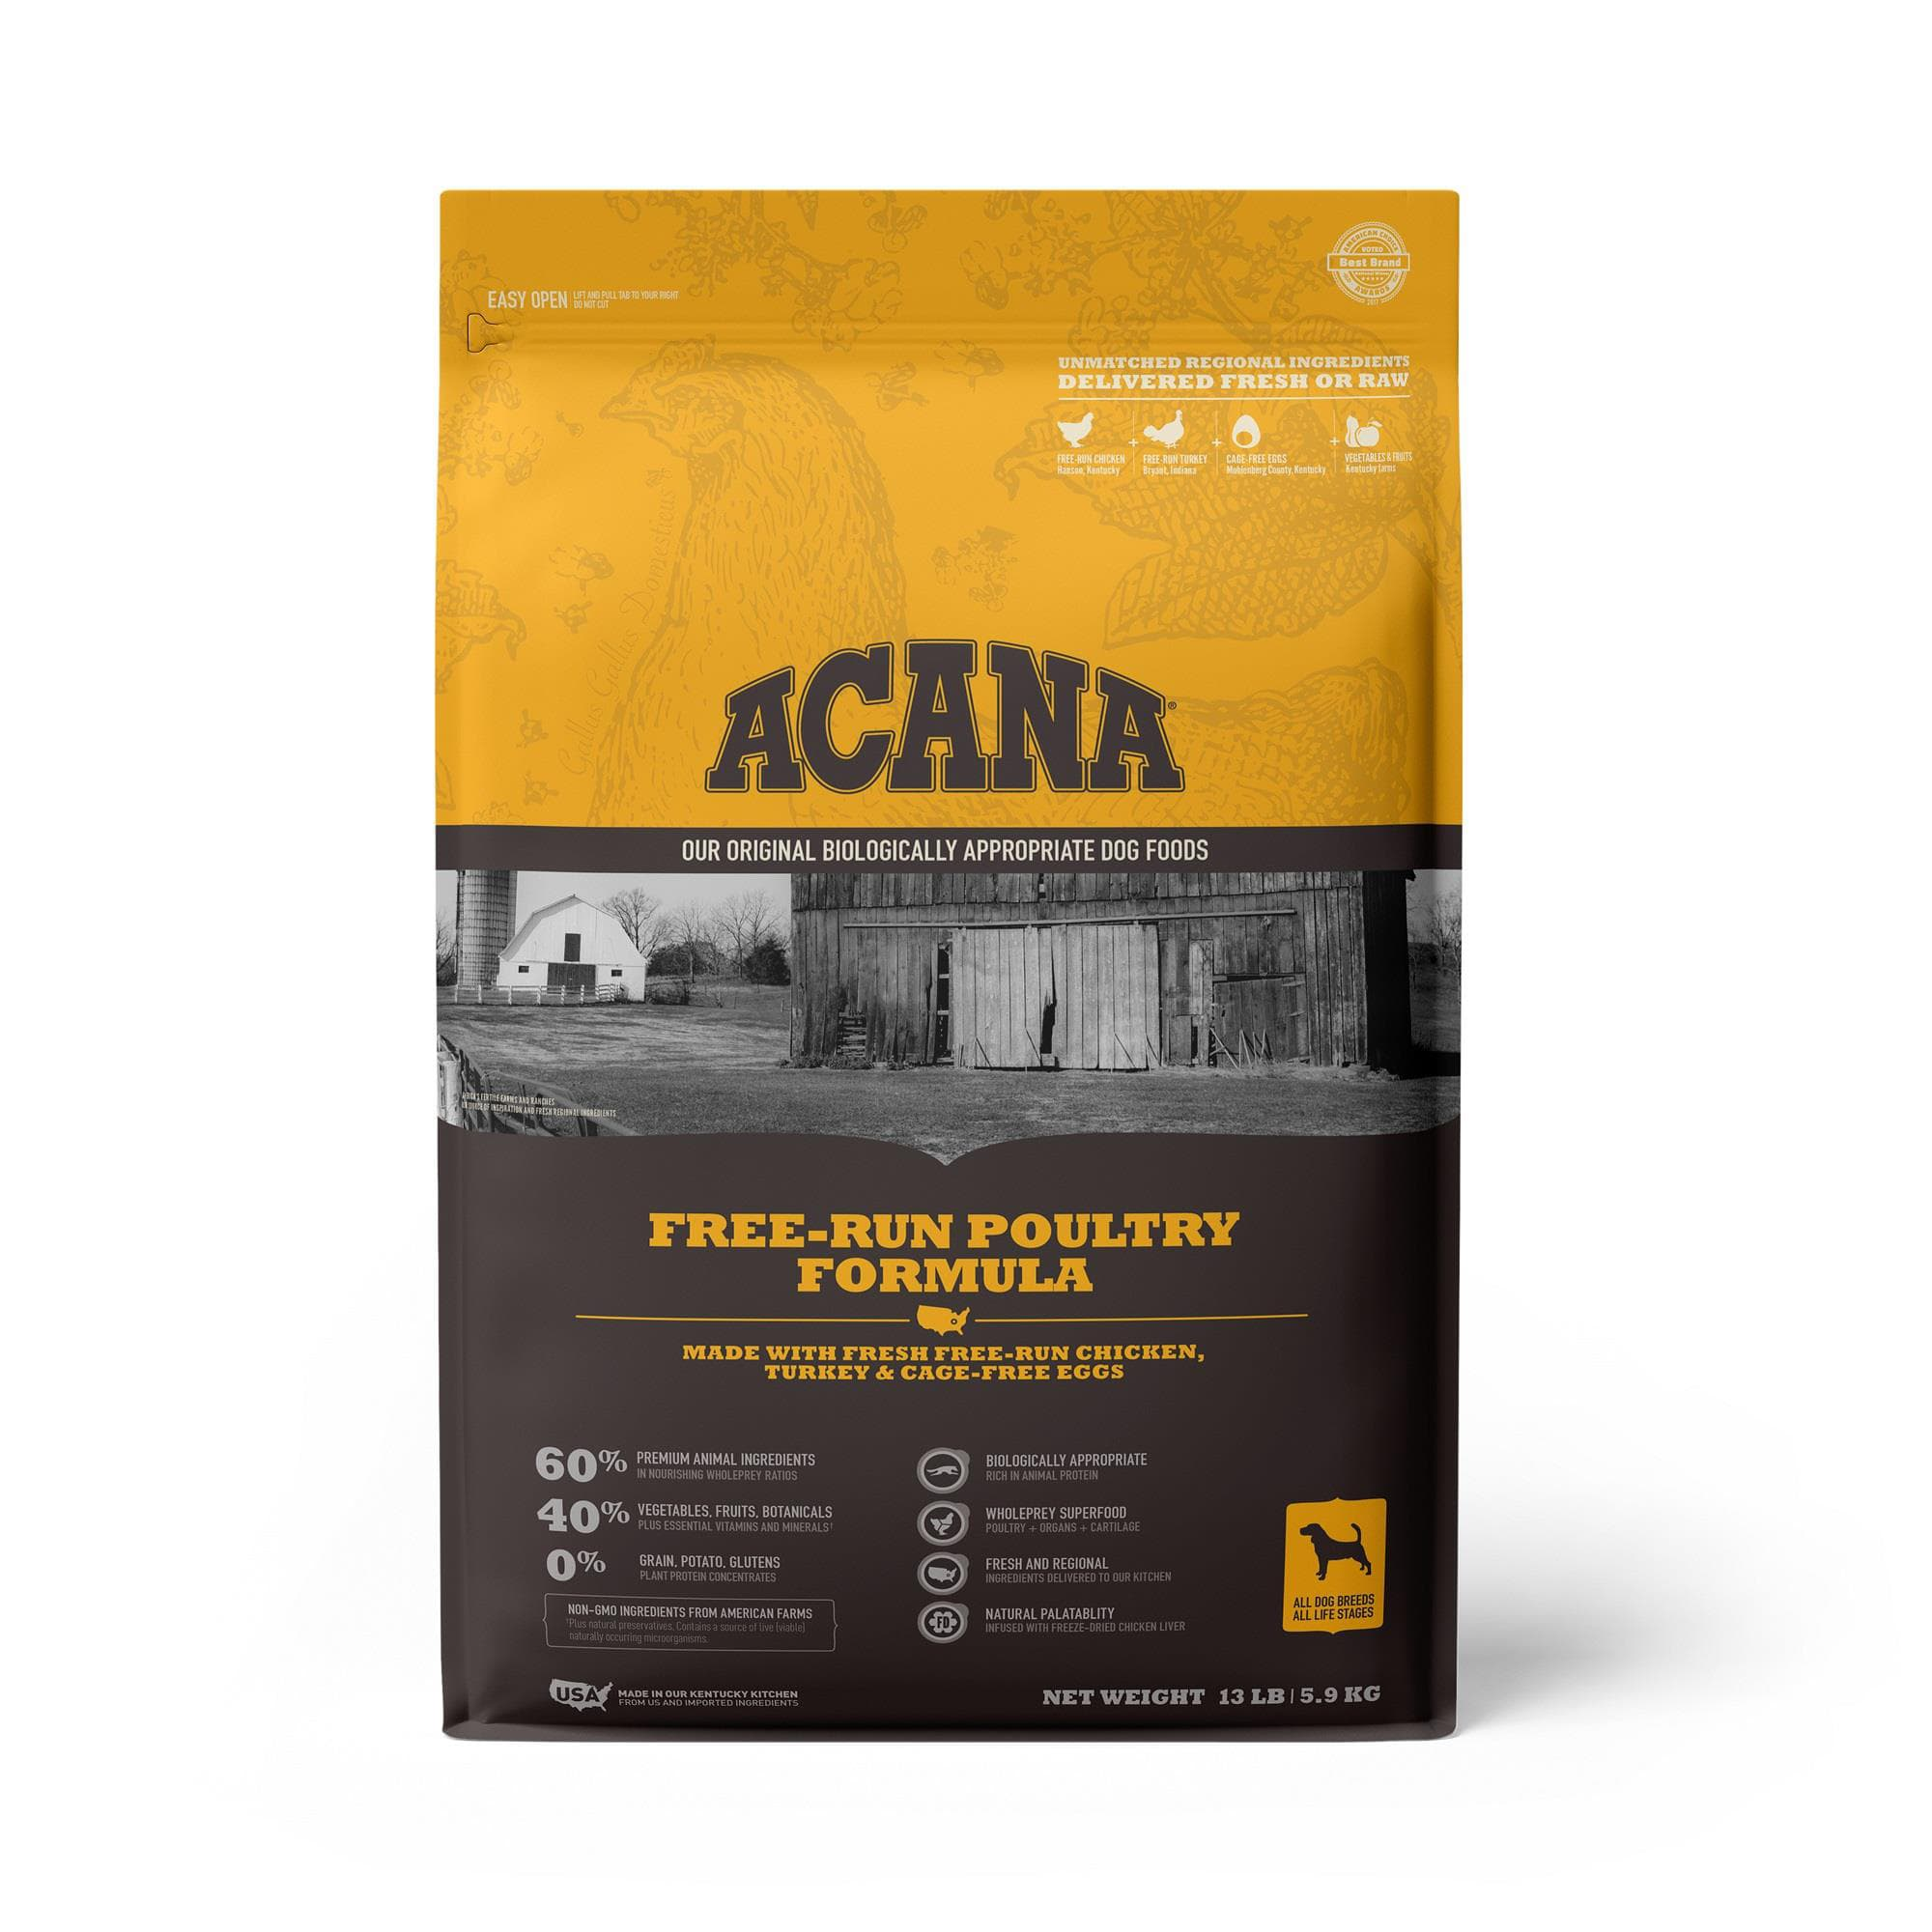 ACANA Grain-Free Free Run Poultry Chicken and Turkey and Cage-free Eggs Dry Dog Food, 13 lbs.